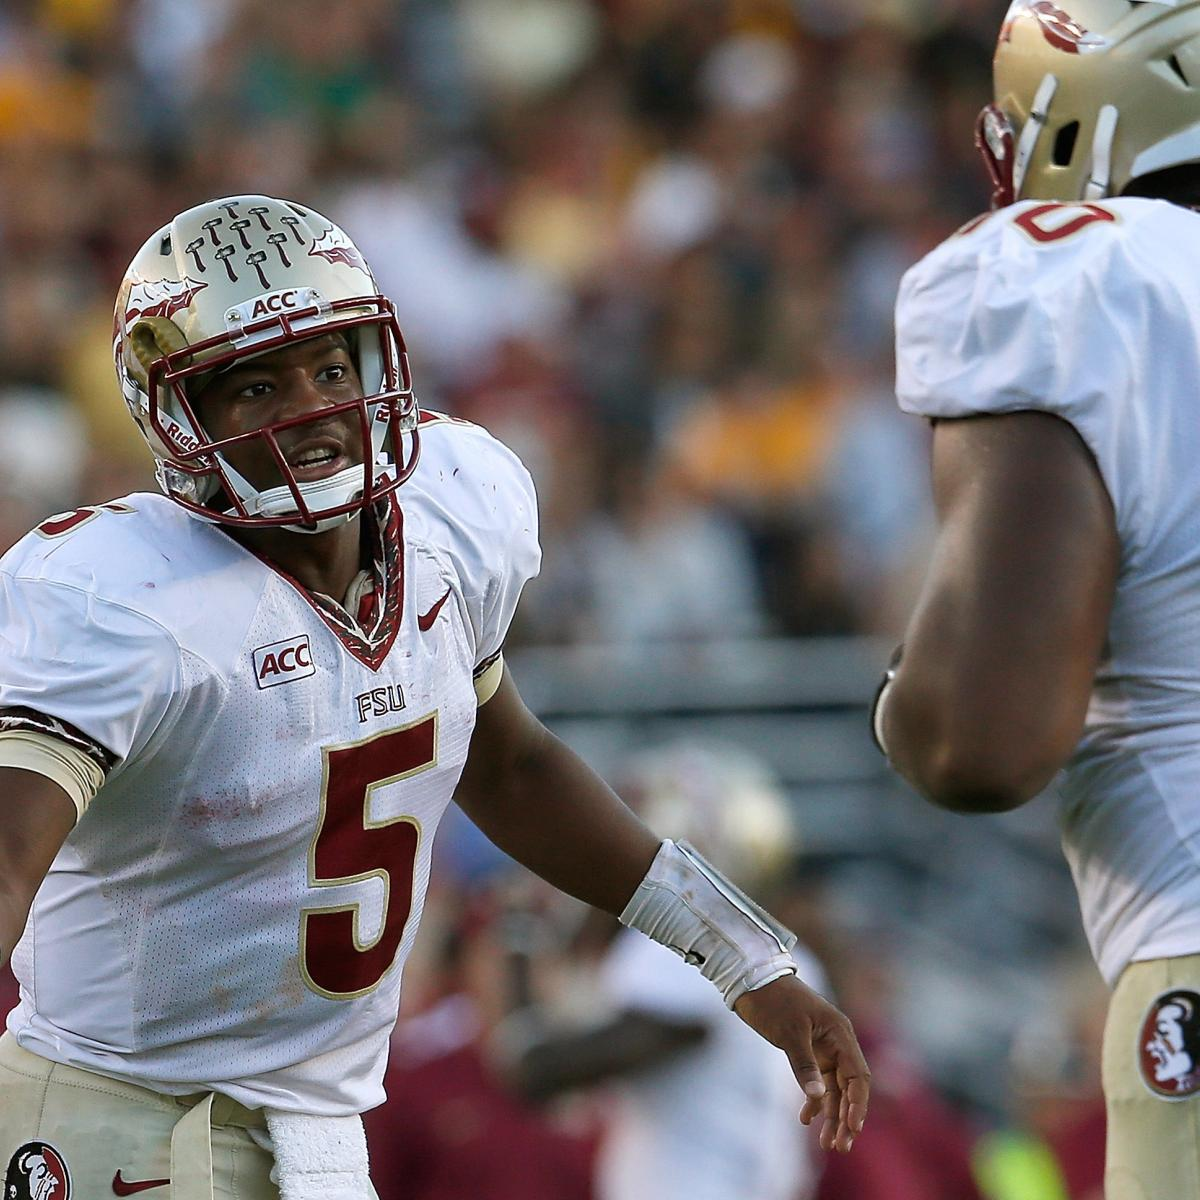 Florida State football news from the No 1 FSU website Tomahawk Nation